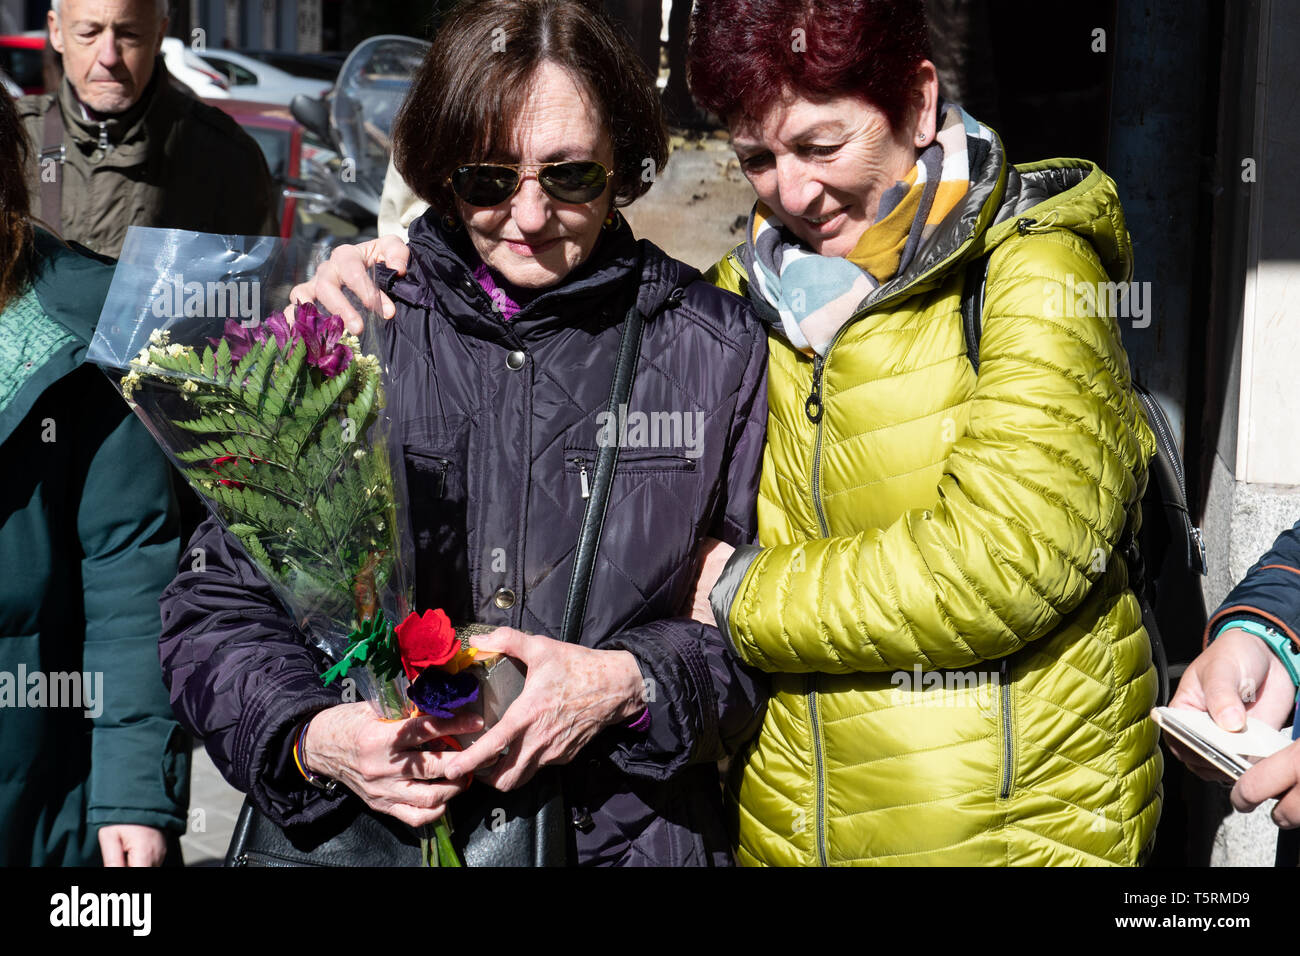 Madrid, Spain. 26th April, 2019. Maria Zurita (L) reacting after receiving the Stolperstein in the memory of her uncle, Antonio Zurita Mayo. - Stock Image